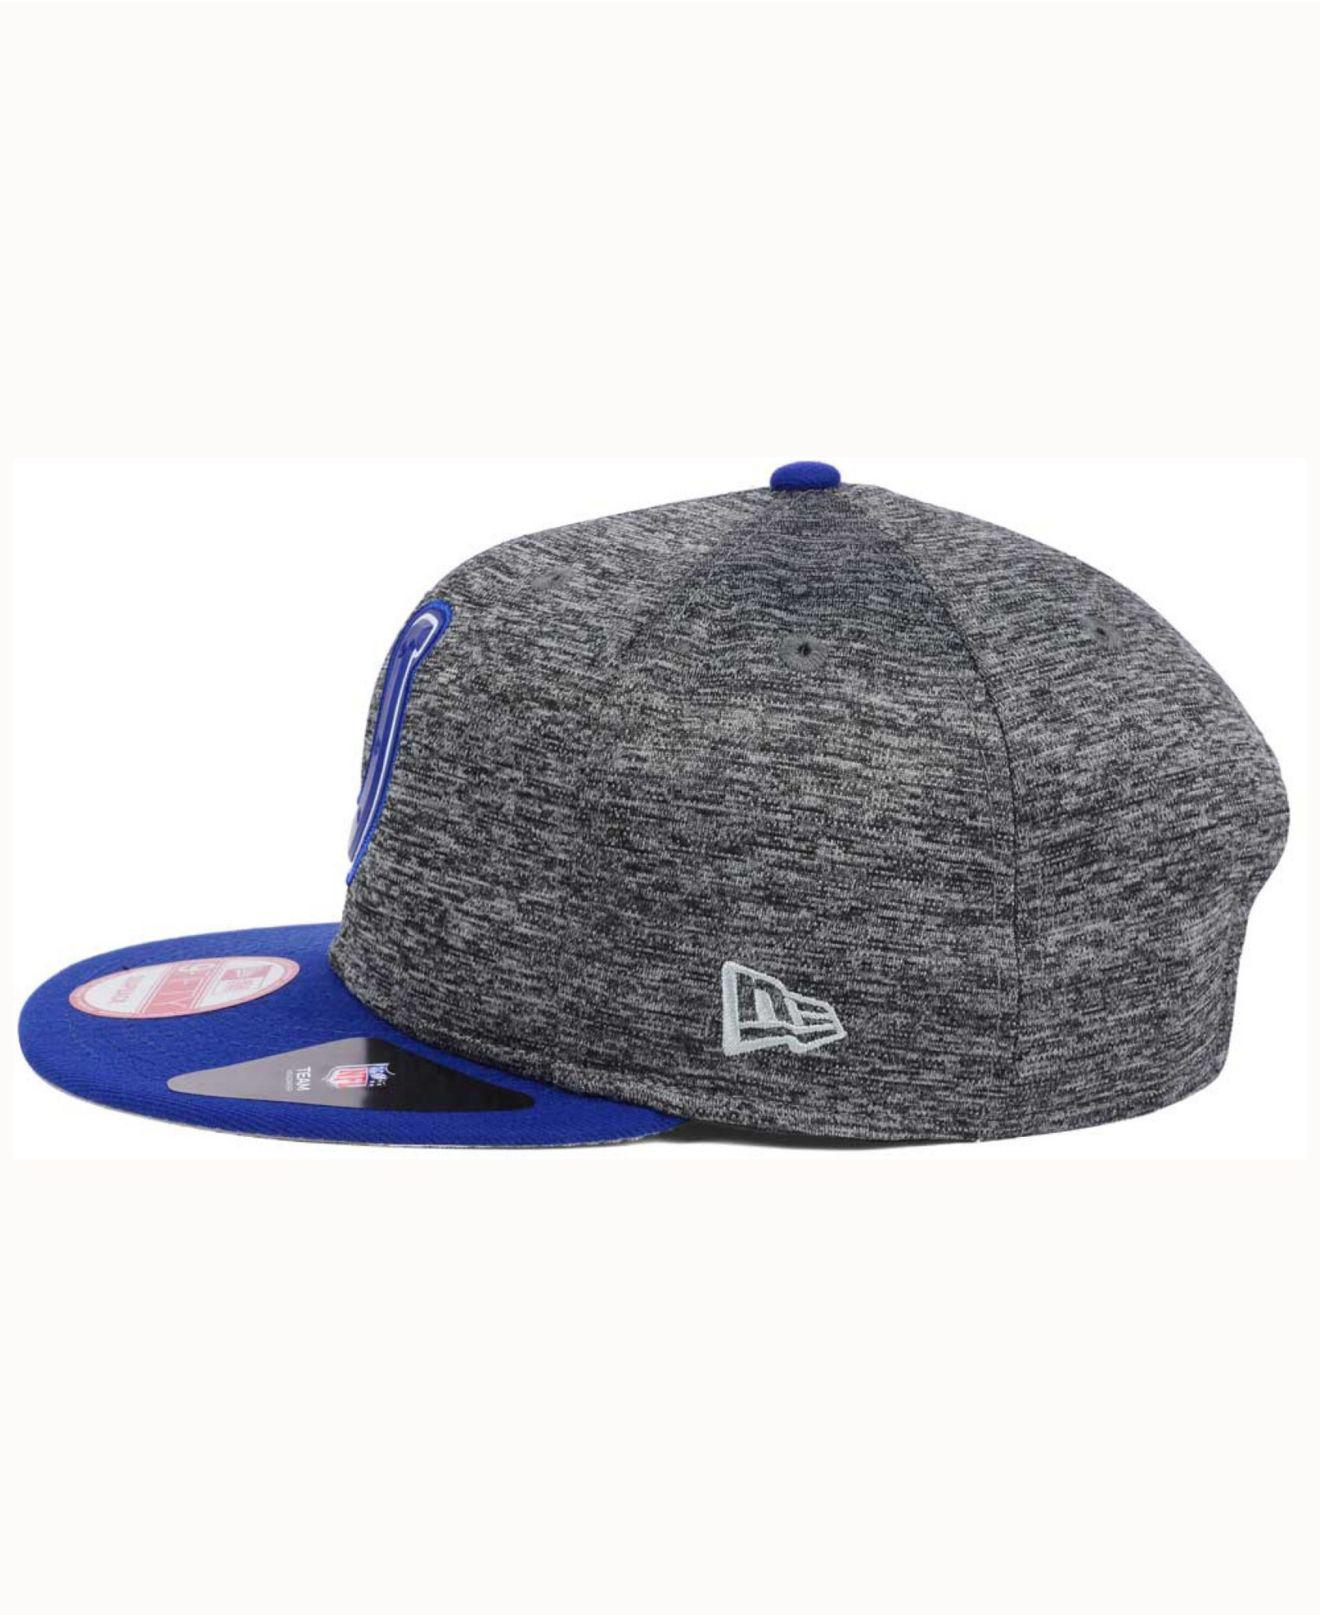 detailed look 85553 750eb ... italy shadow bevel 9fifty snapback cap for men lyst. view fullscreen  8ecee 237f1